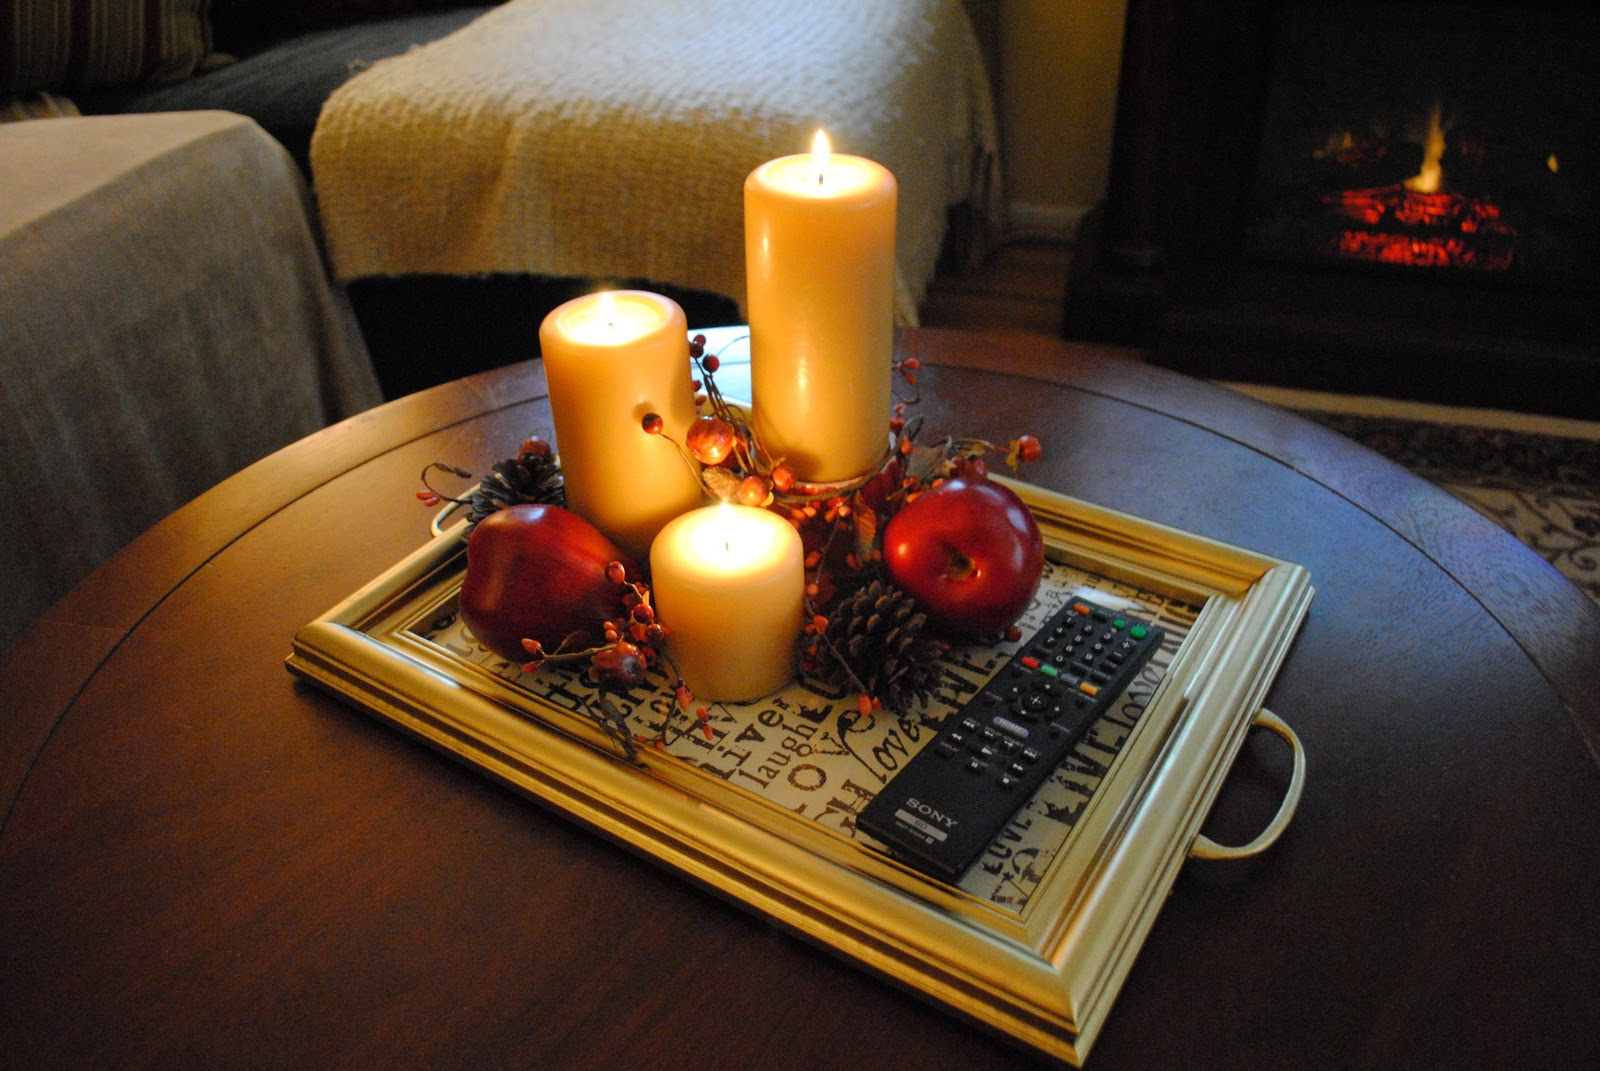 Fall Winter Coffee Table Tray Display Decor Pinterest Coffee Table Tray Table Tray And